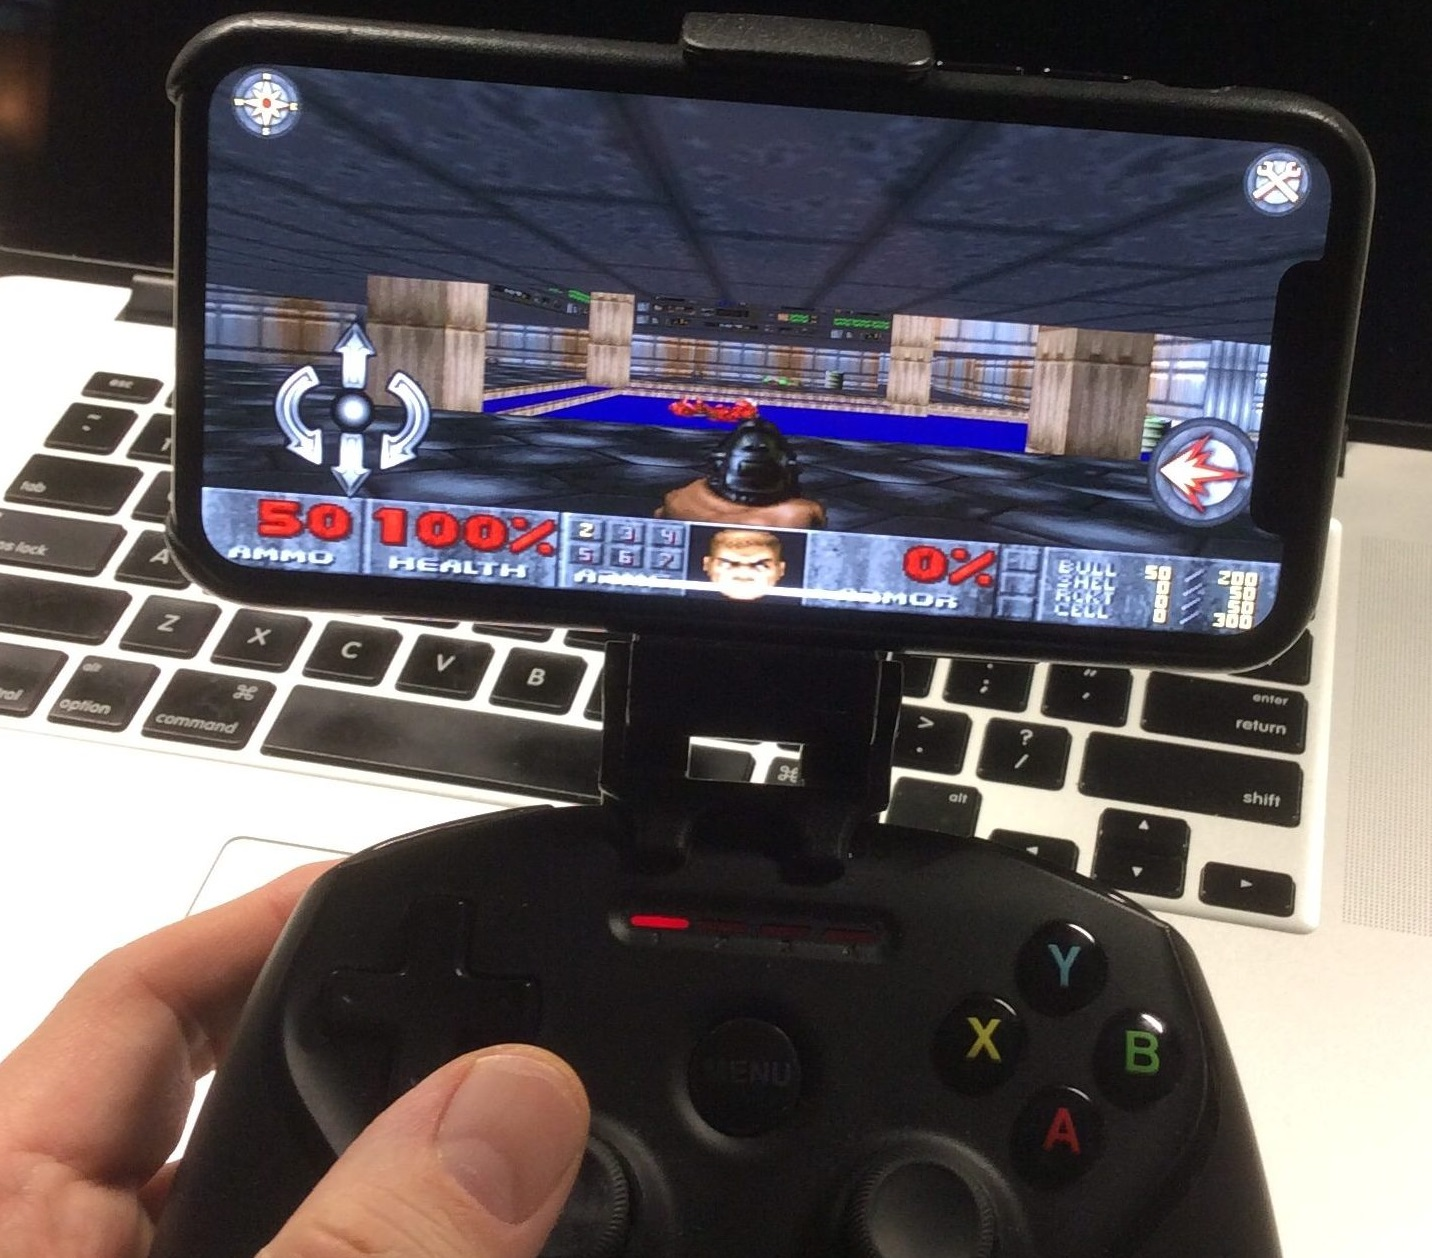 <em>Doom</em> running on a modern iOS device, years after official support ended.